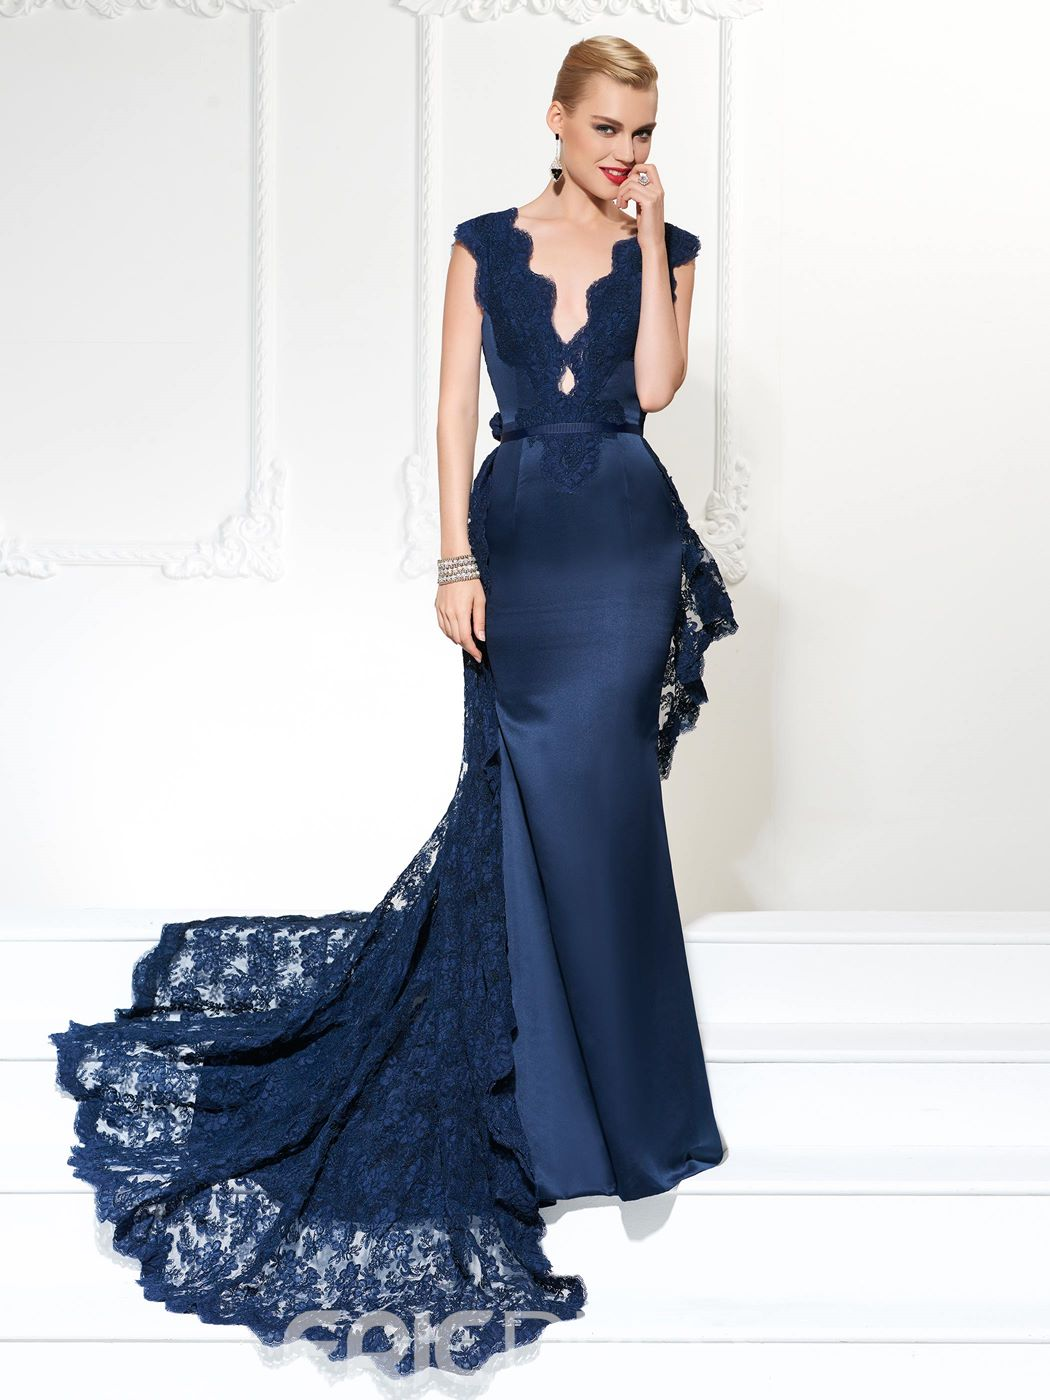 Ericdress Deep Neck Satin Mermaid Evening Gown With Lace Watteau Train